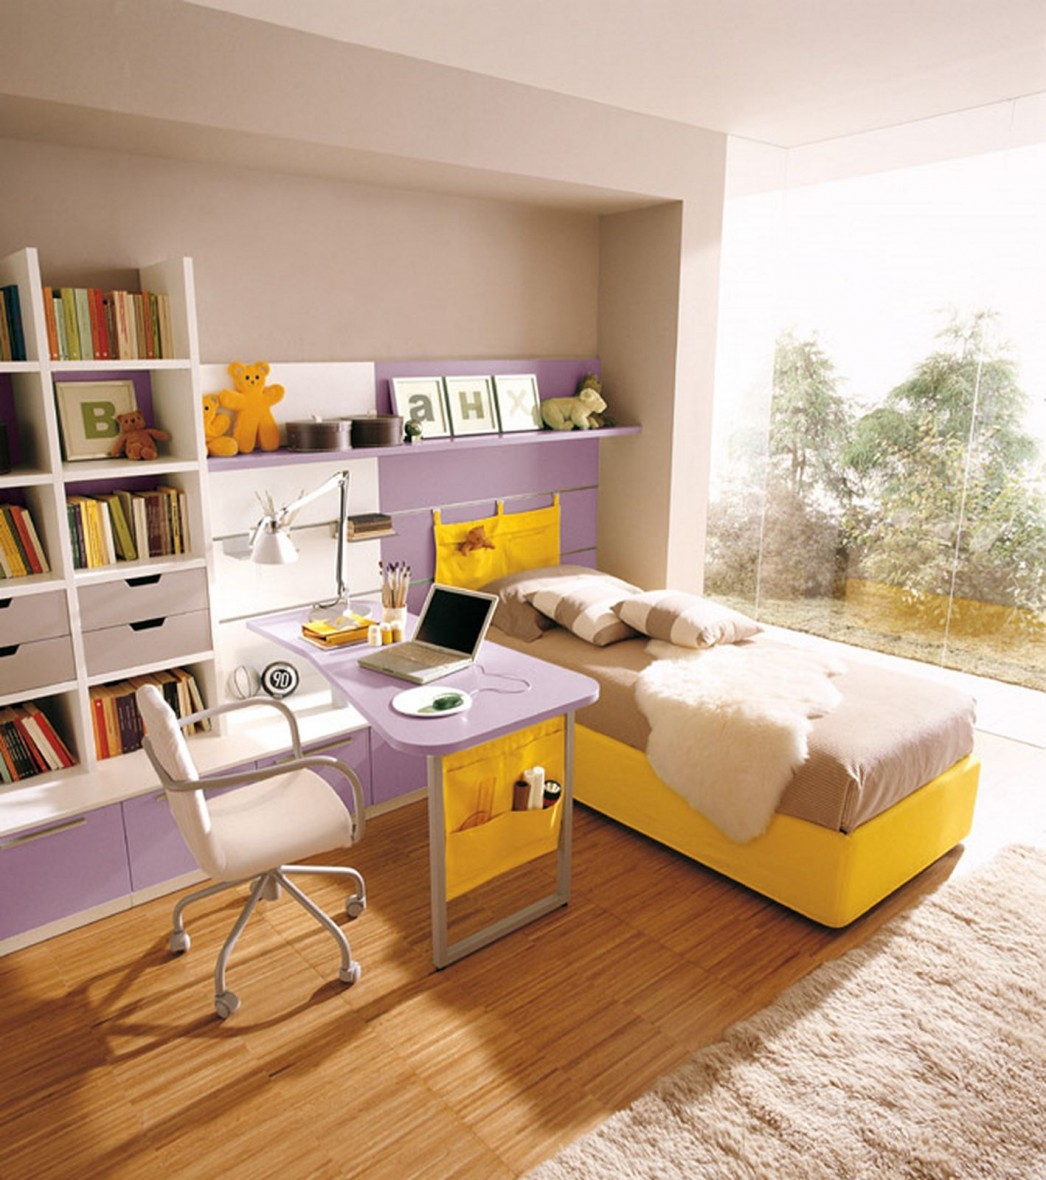 Bedroom Interior Room Design Brown Small Kid With Storage Excerpt Ideas: 23 Inspirational Purple Interior Designs You Must See